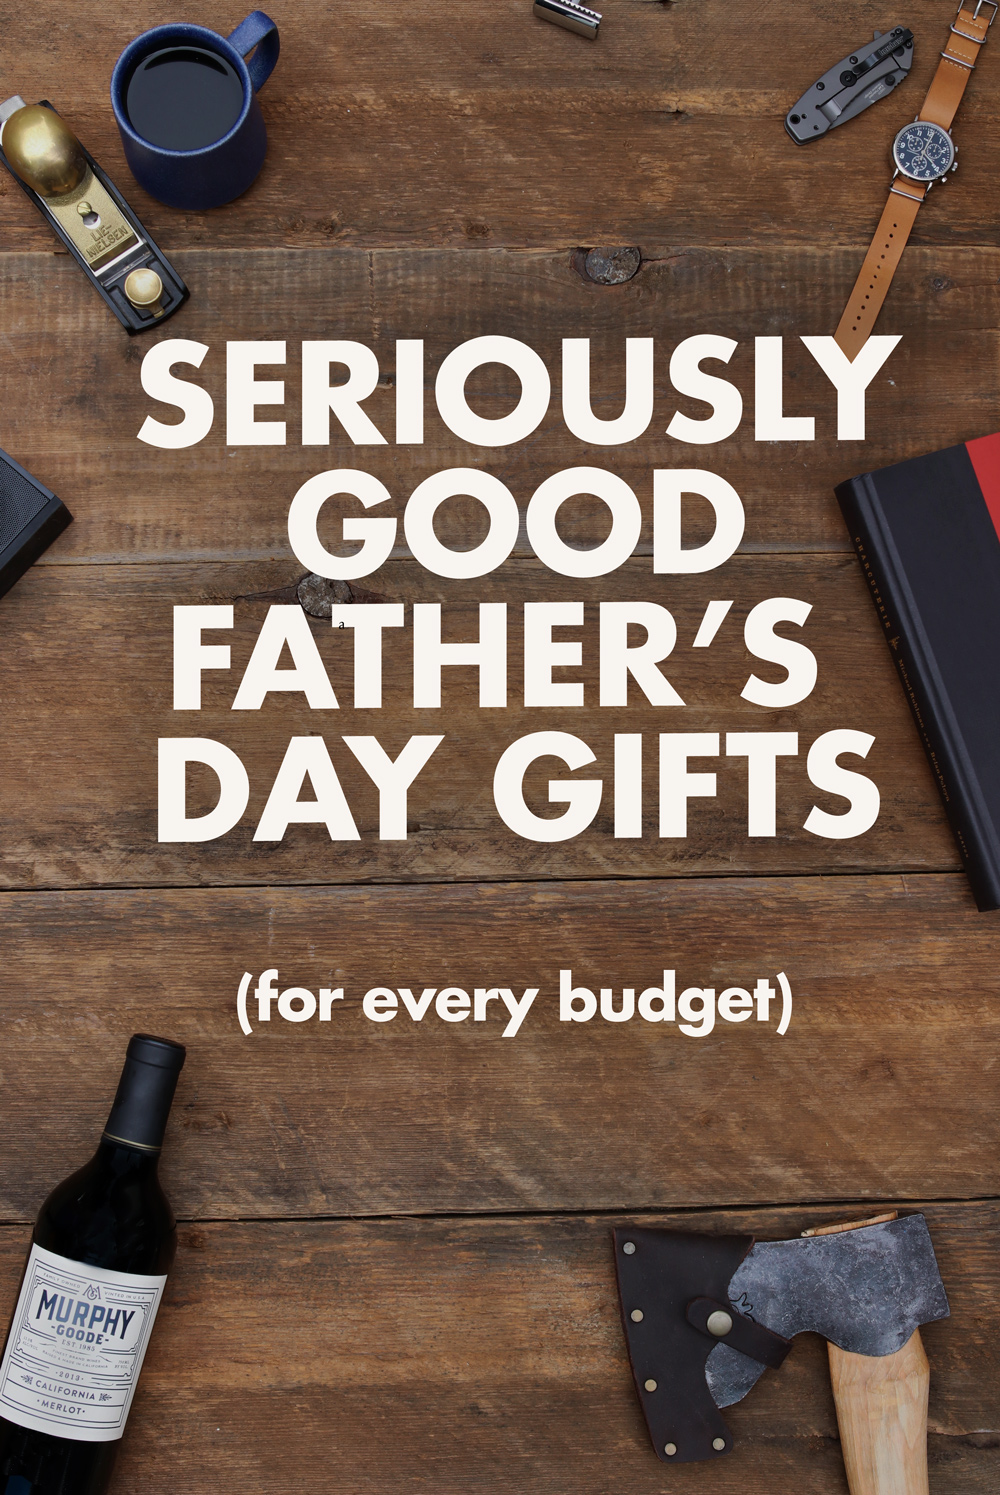 Best fathers day gifts manmadeoriginal